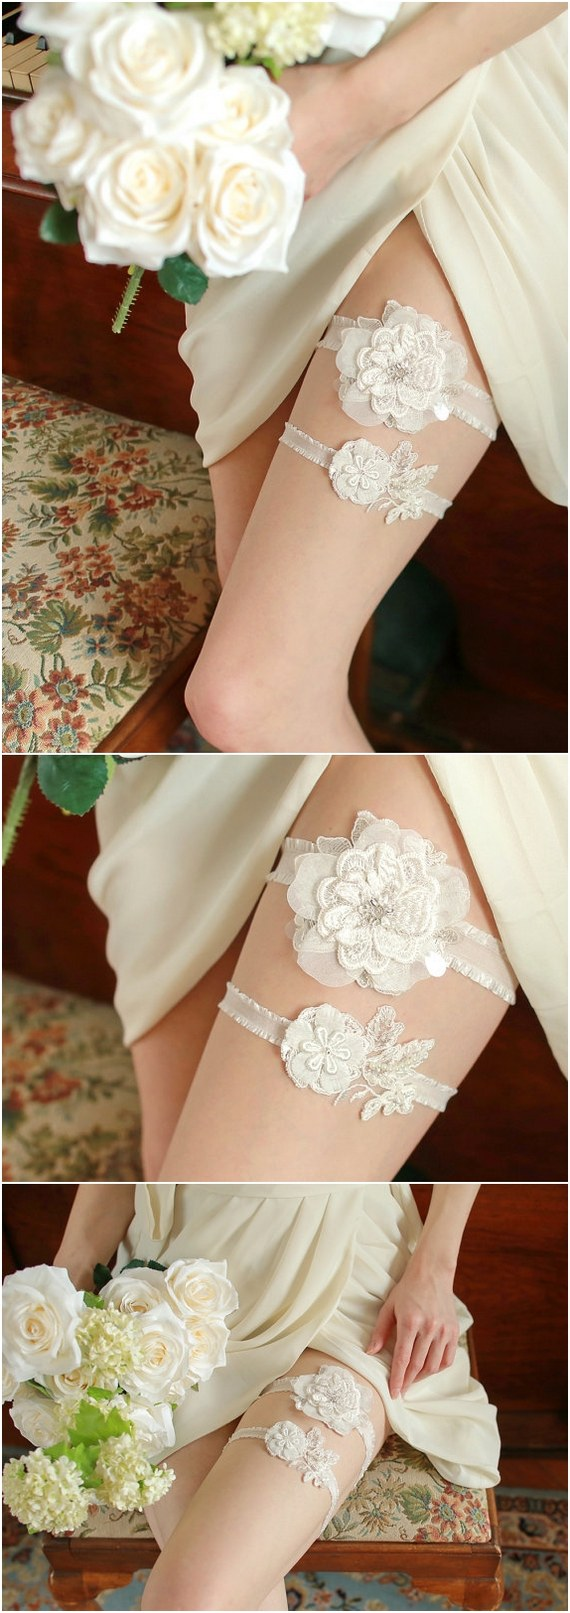 40+ chic and romantic wedding garters you will love - ecstasycoffee